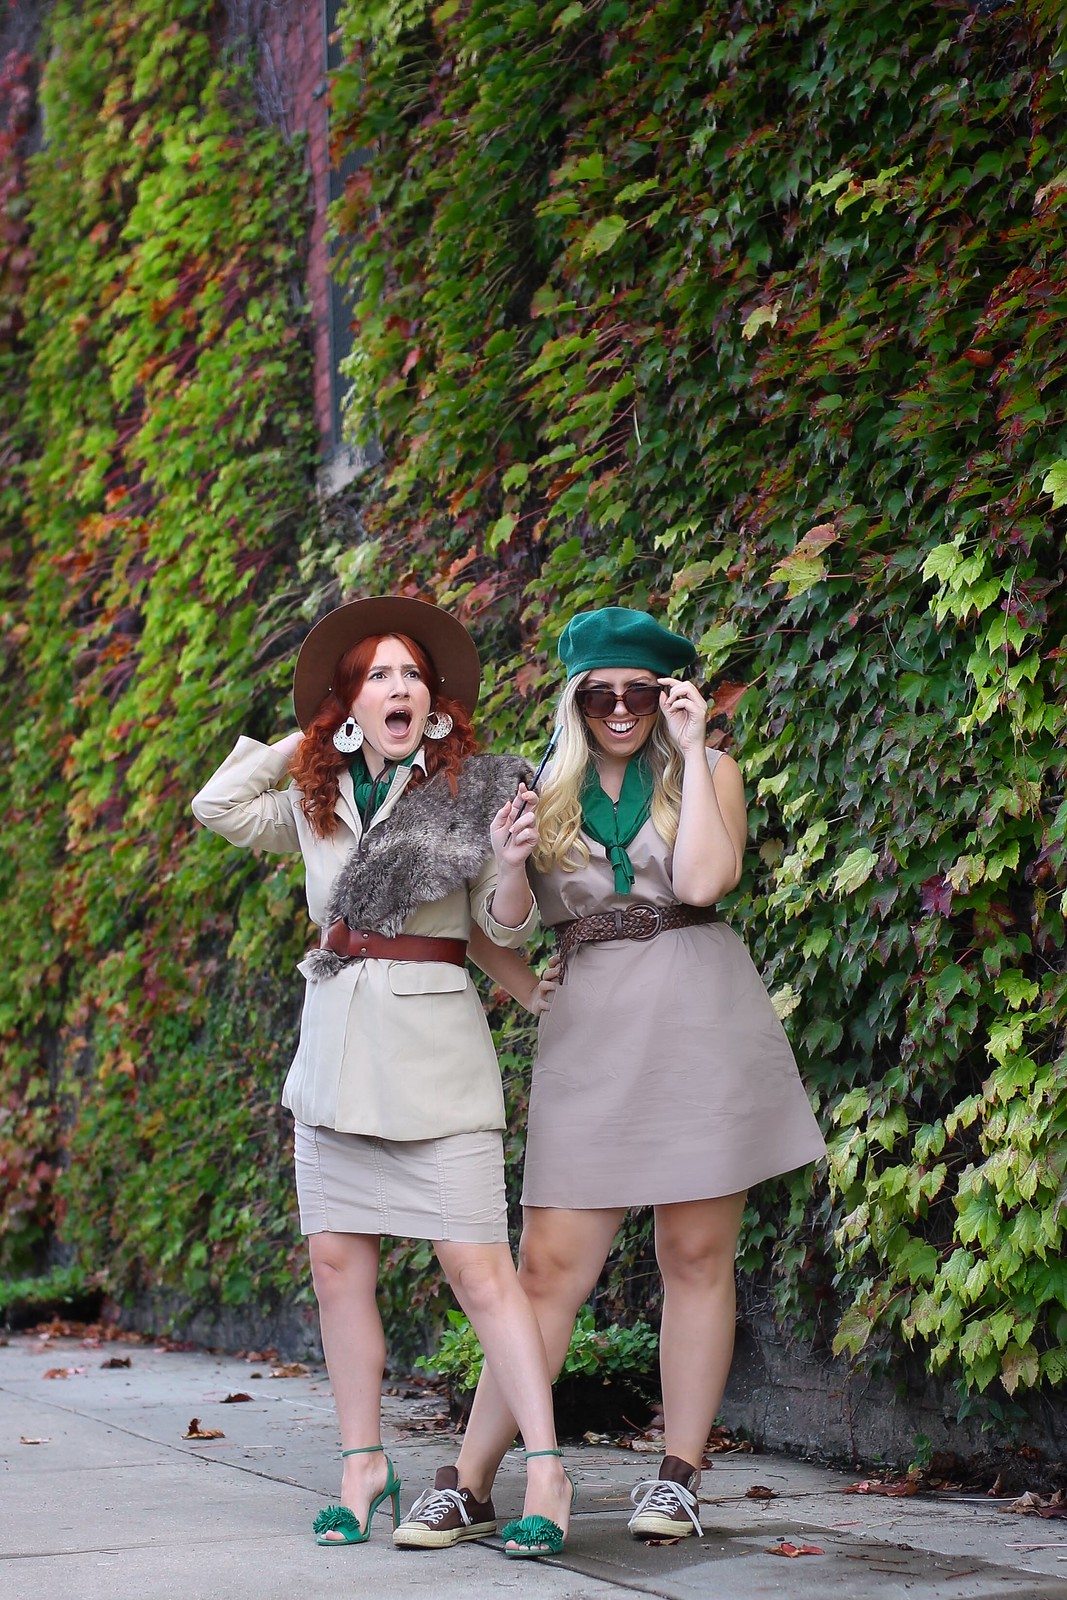 Troop Beverly Hills Costume | Last Minute Halloween Costumes You Can Amazon Prime